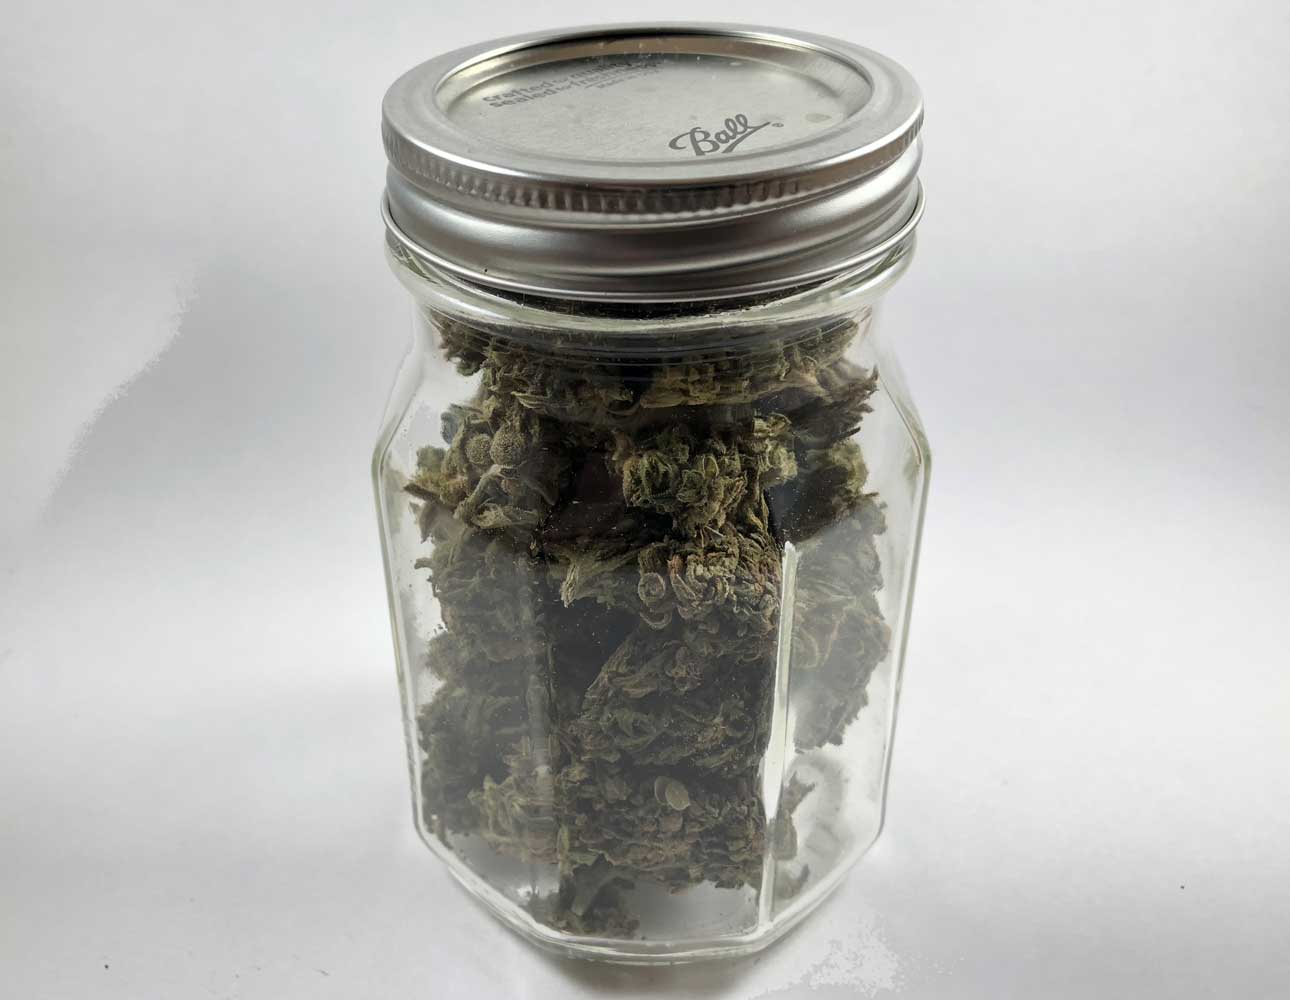 CBD Hemp Direct in a jar